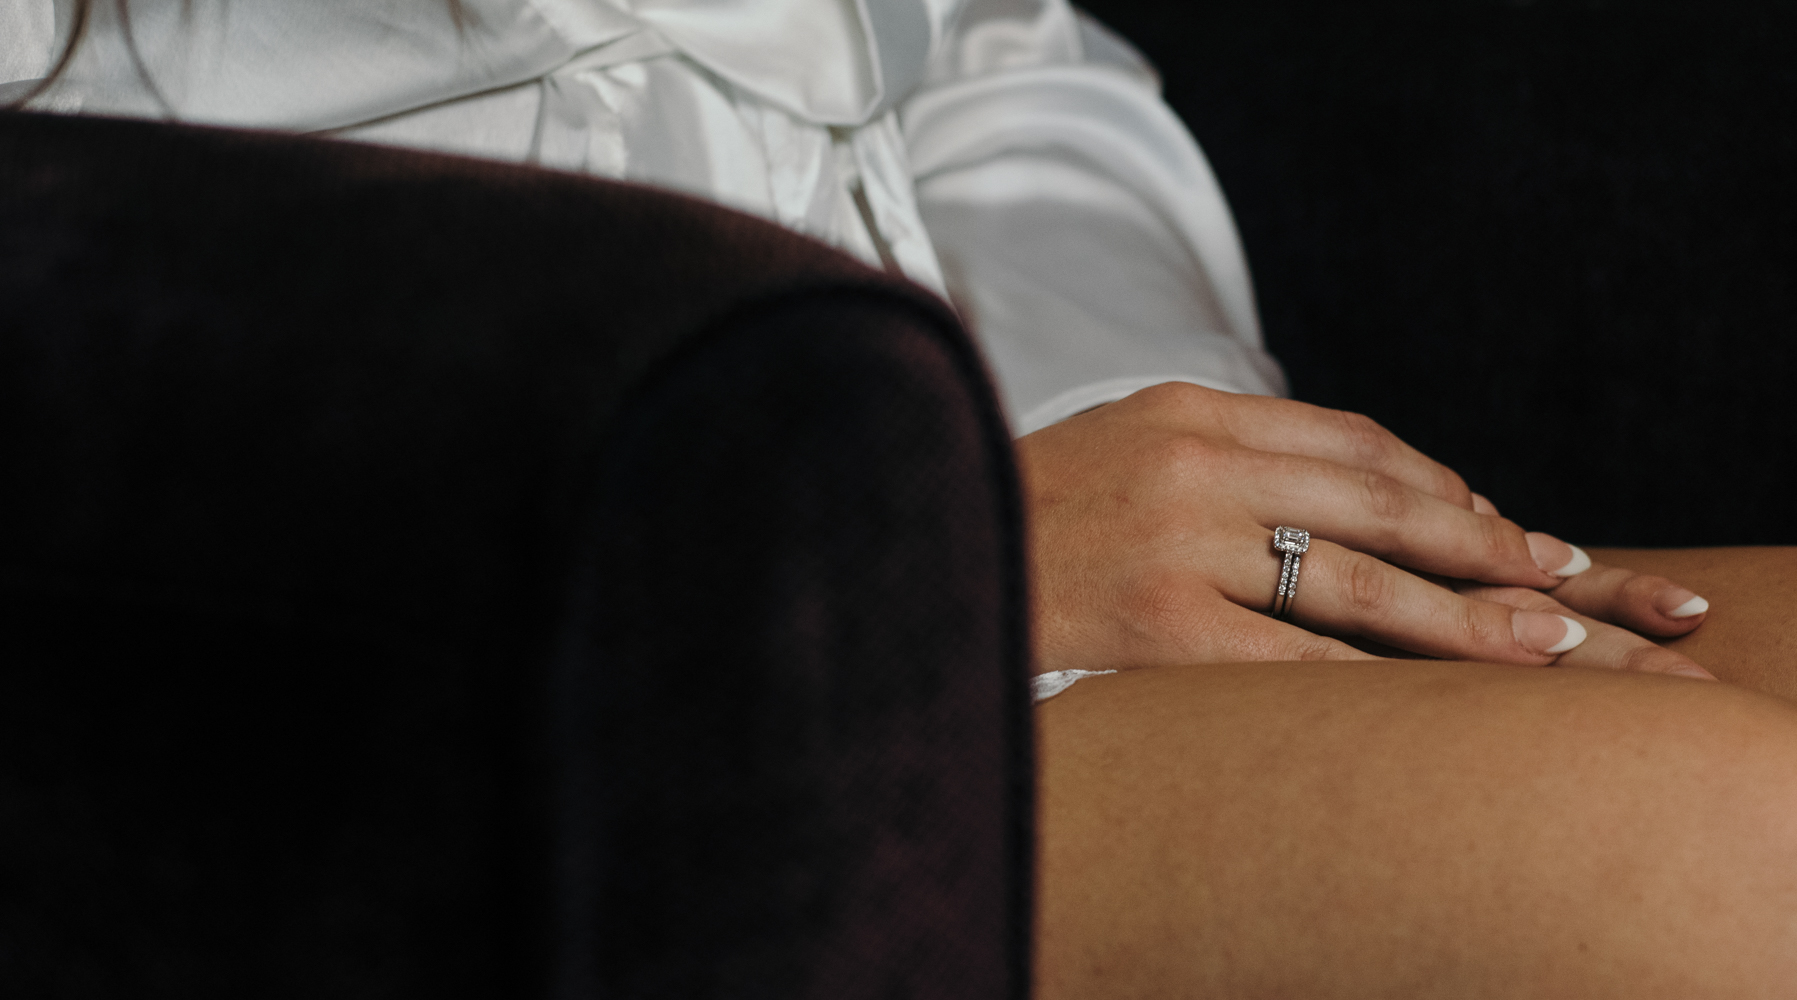 The brides engagement ring